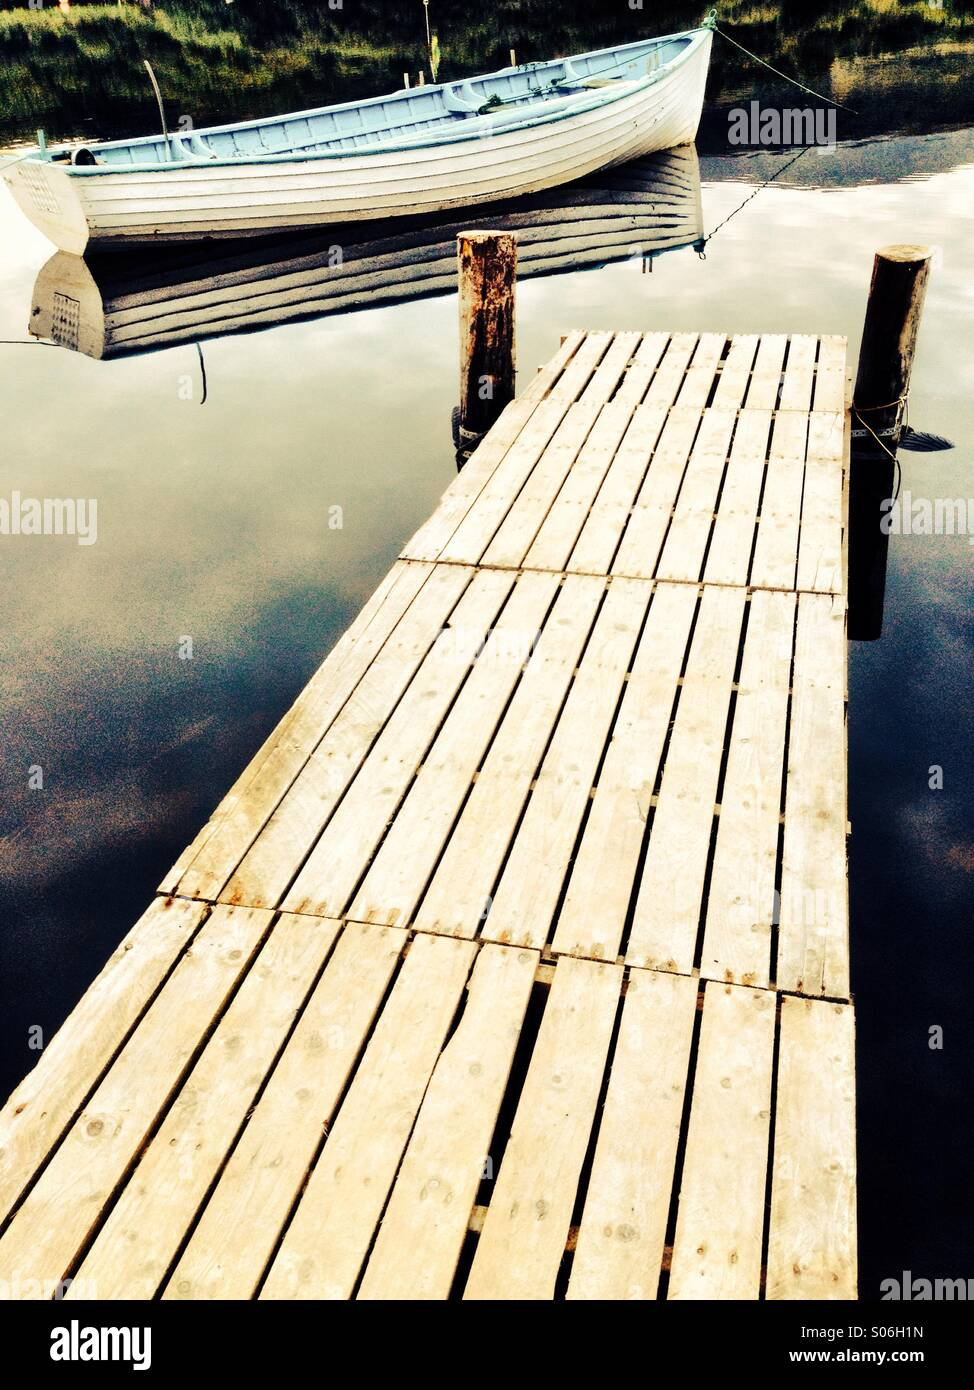 Wooden Jetty and Boat - Stock Image